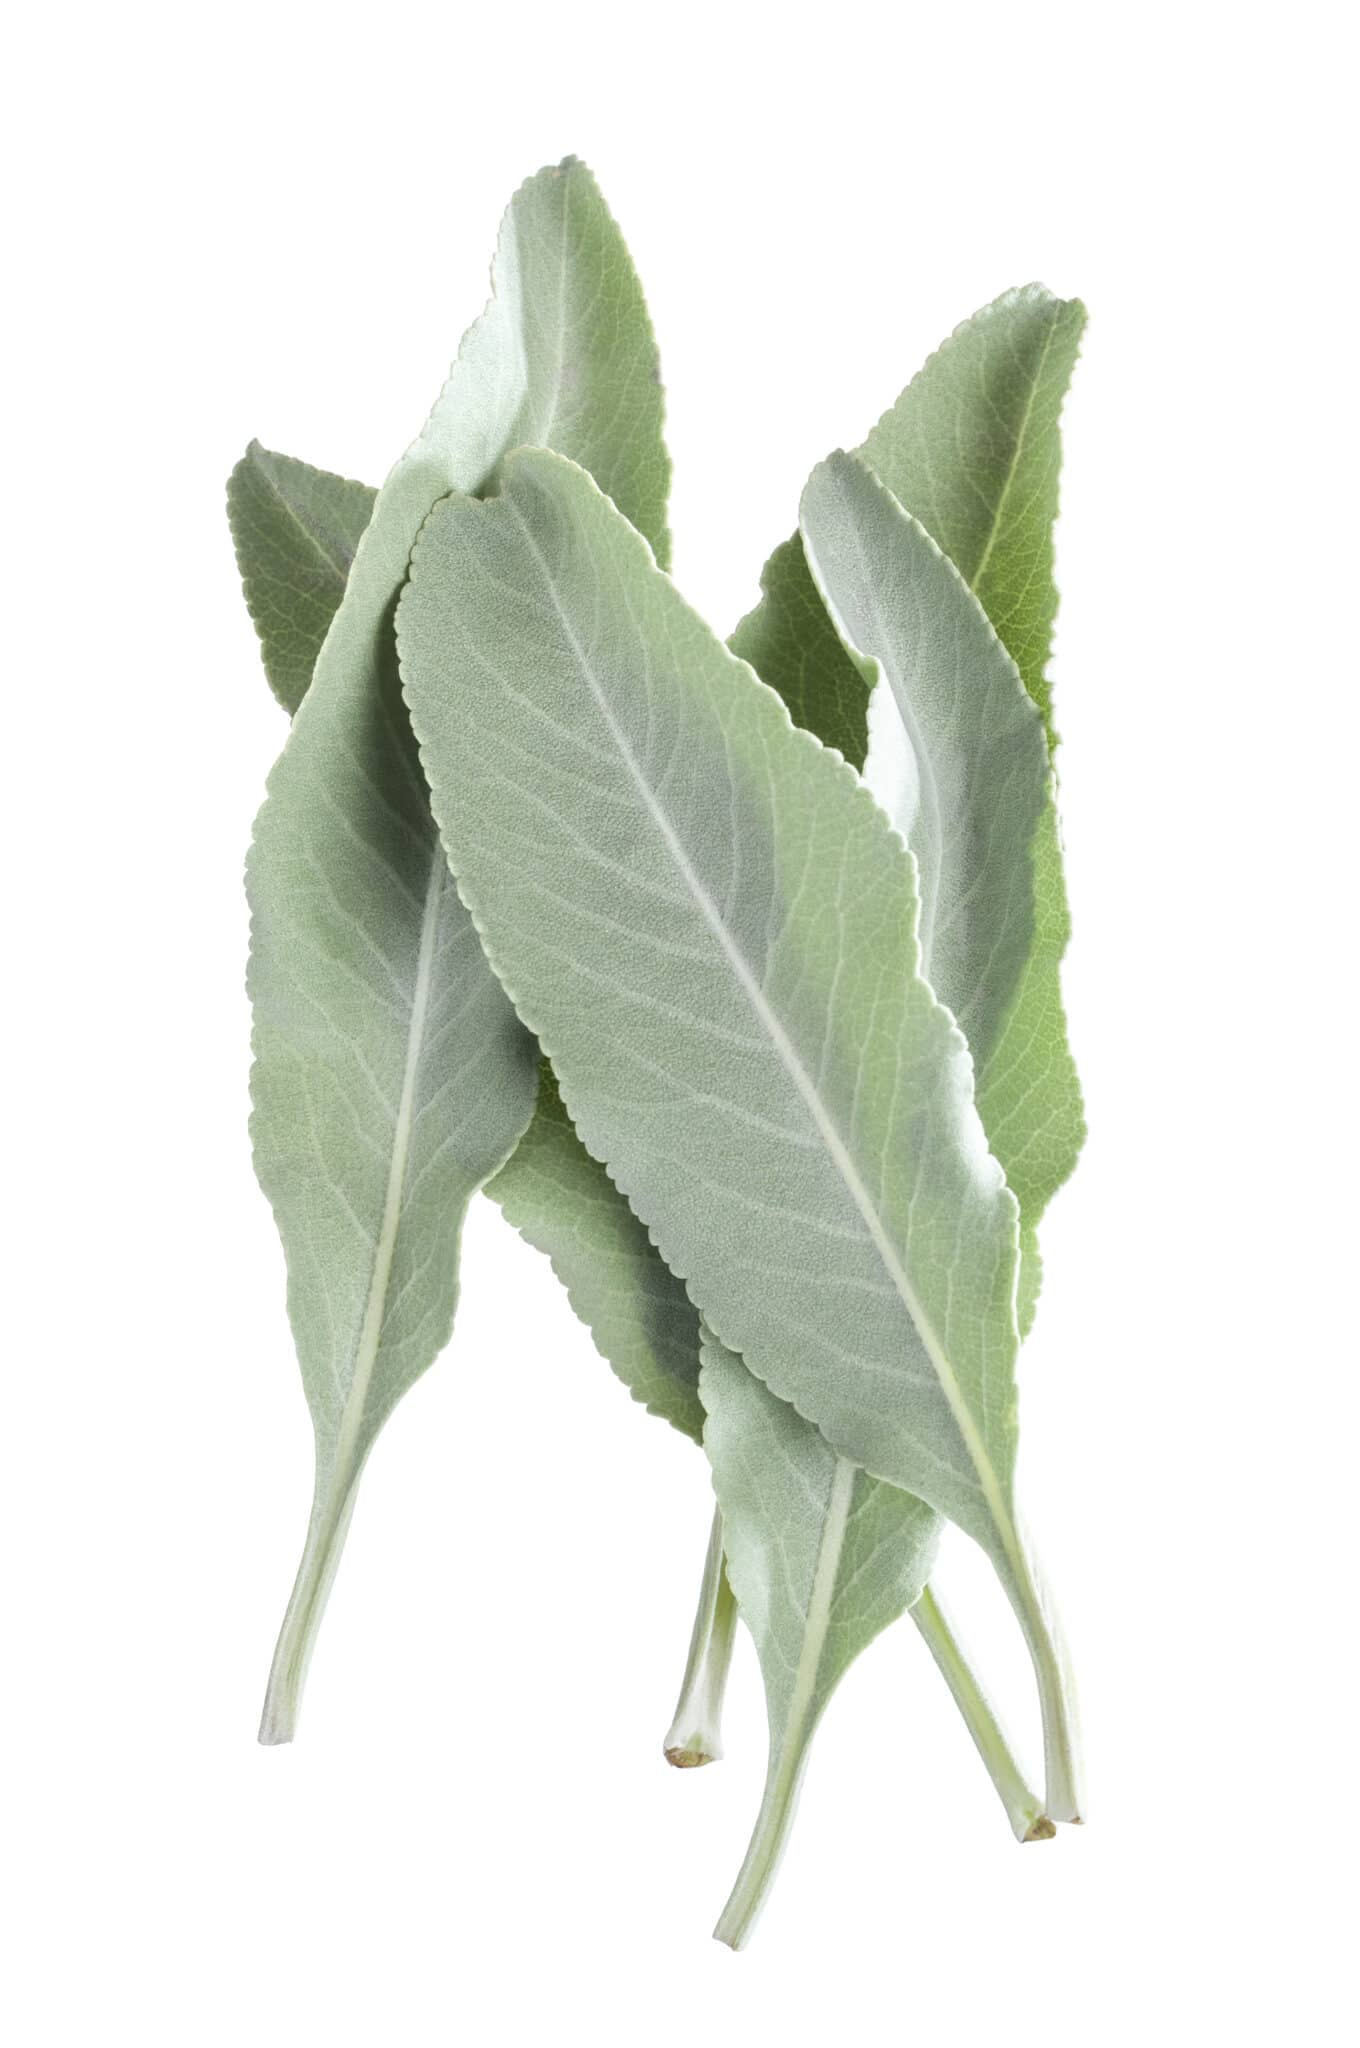 Closeup of small pile of five fresh white sage Salvia apiana leaves isolated on white background